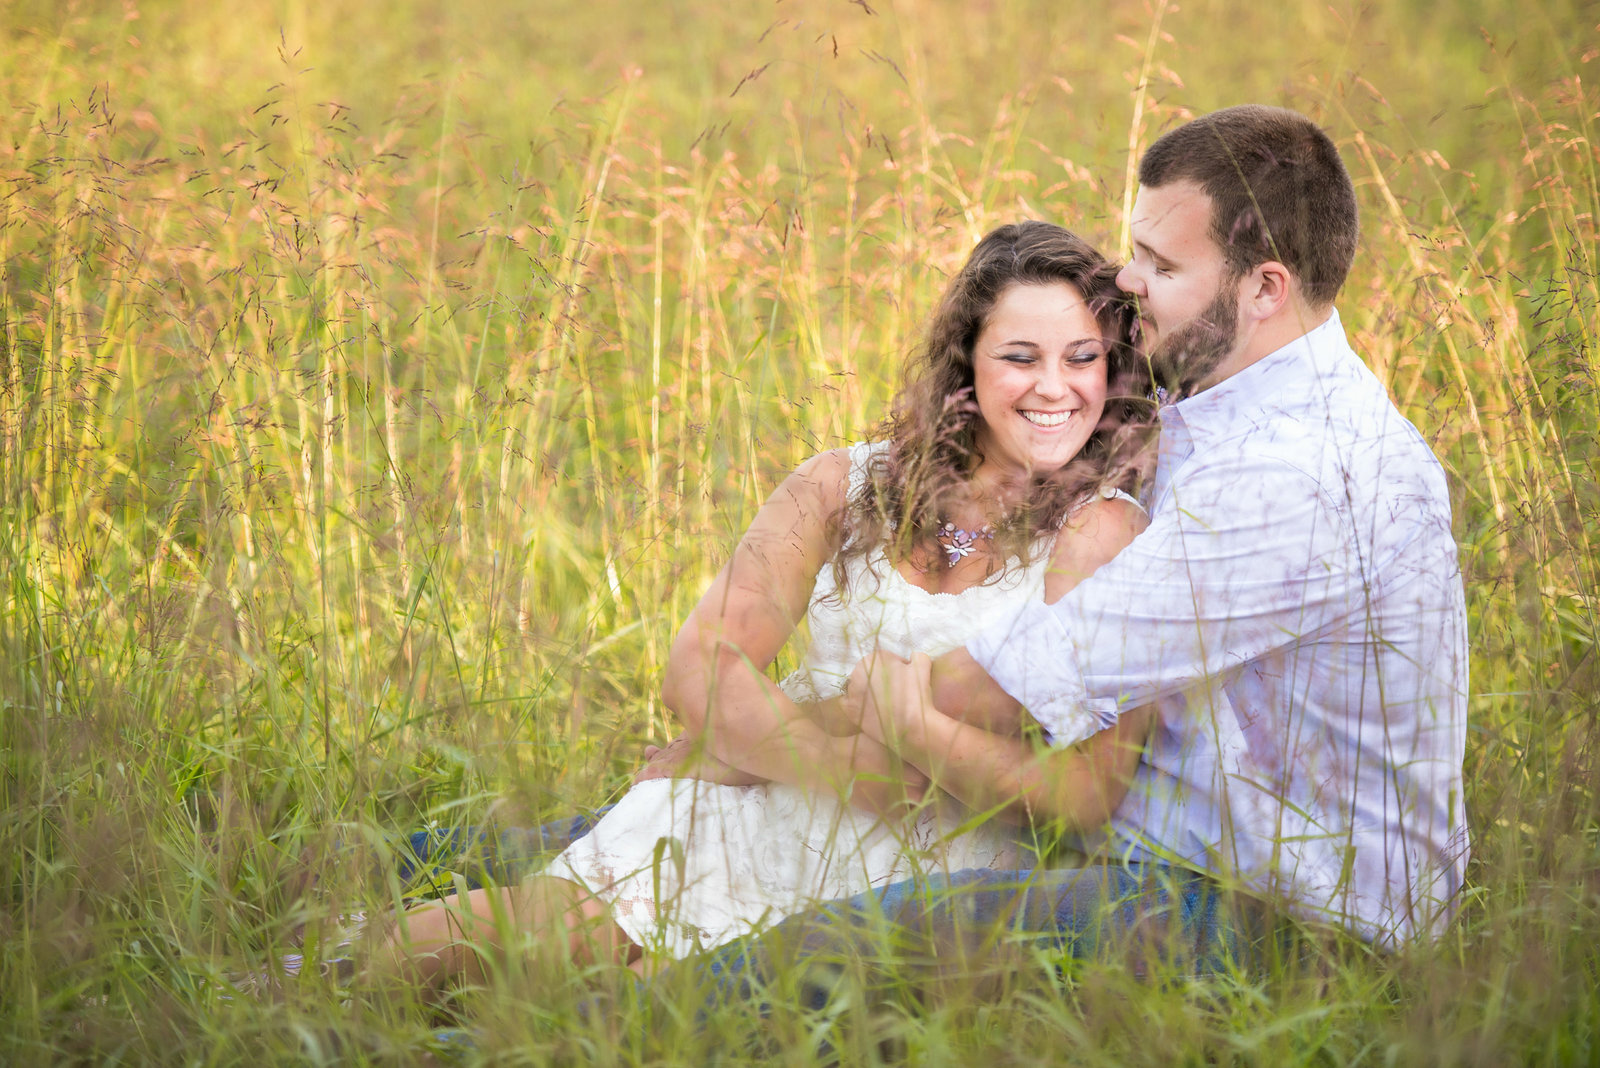 NJ_Rustic_Engagement_Photography020